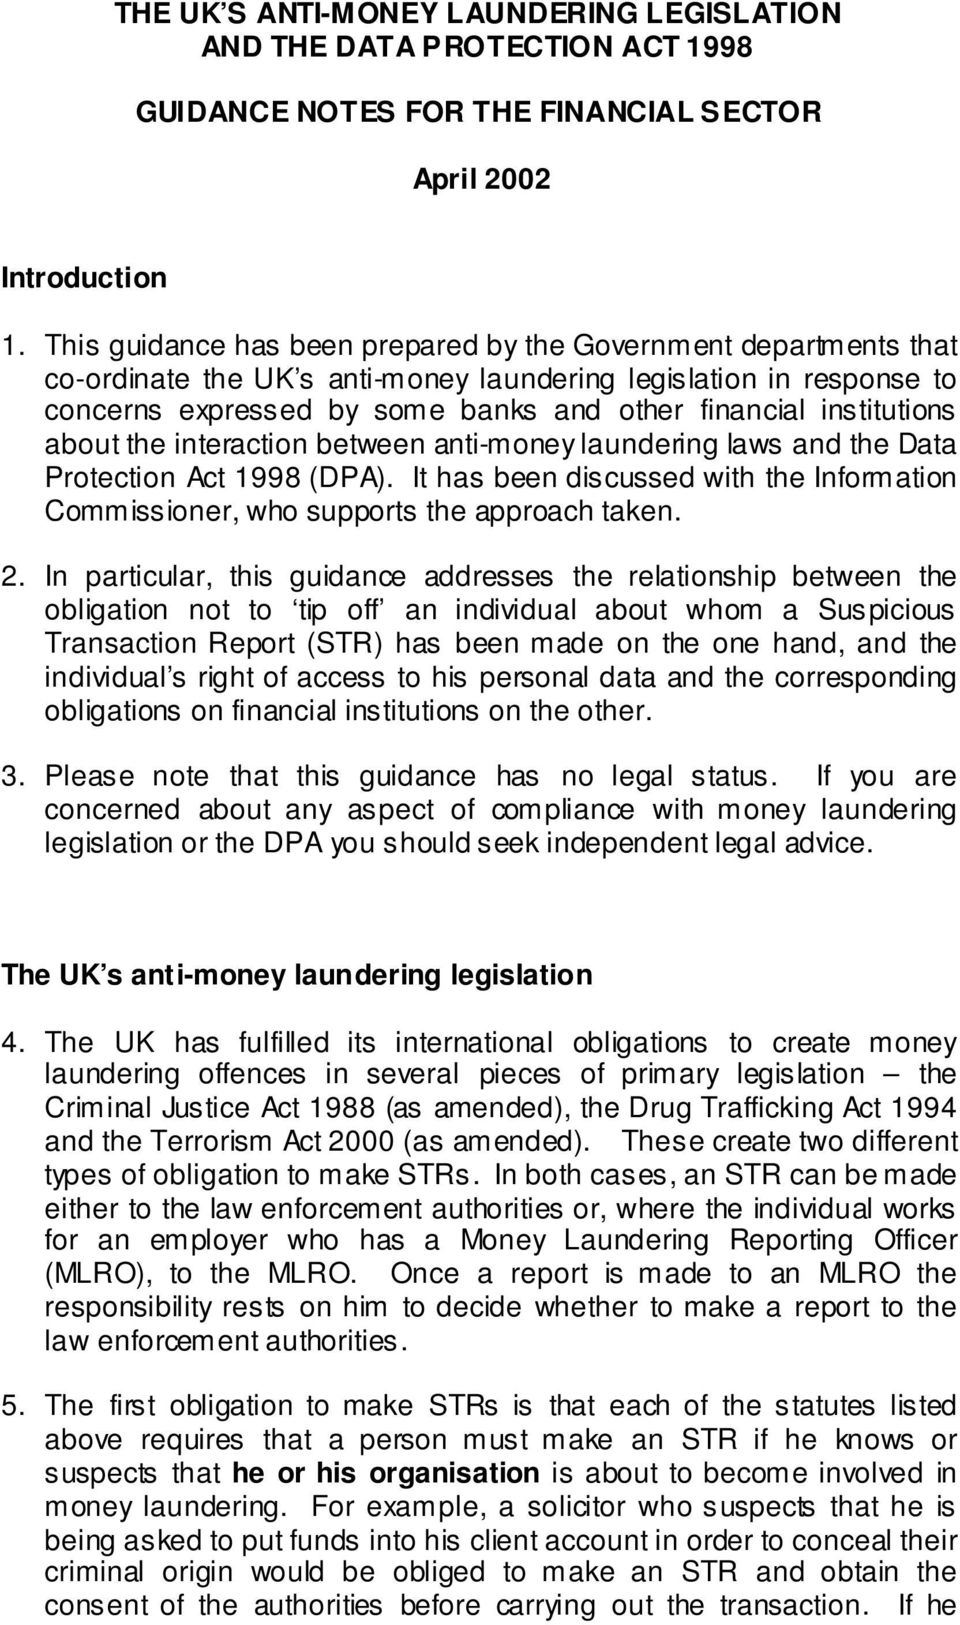 institutions about the interaction between anti-money laundering laws and the Data Protection Act 1998 (DPA). It has been discussed with the Information Commissioner, who supports the approach taken.